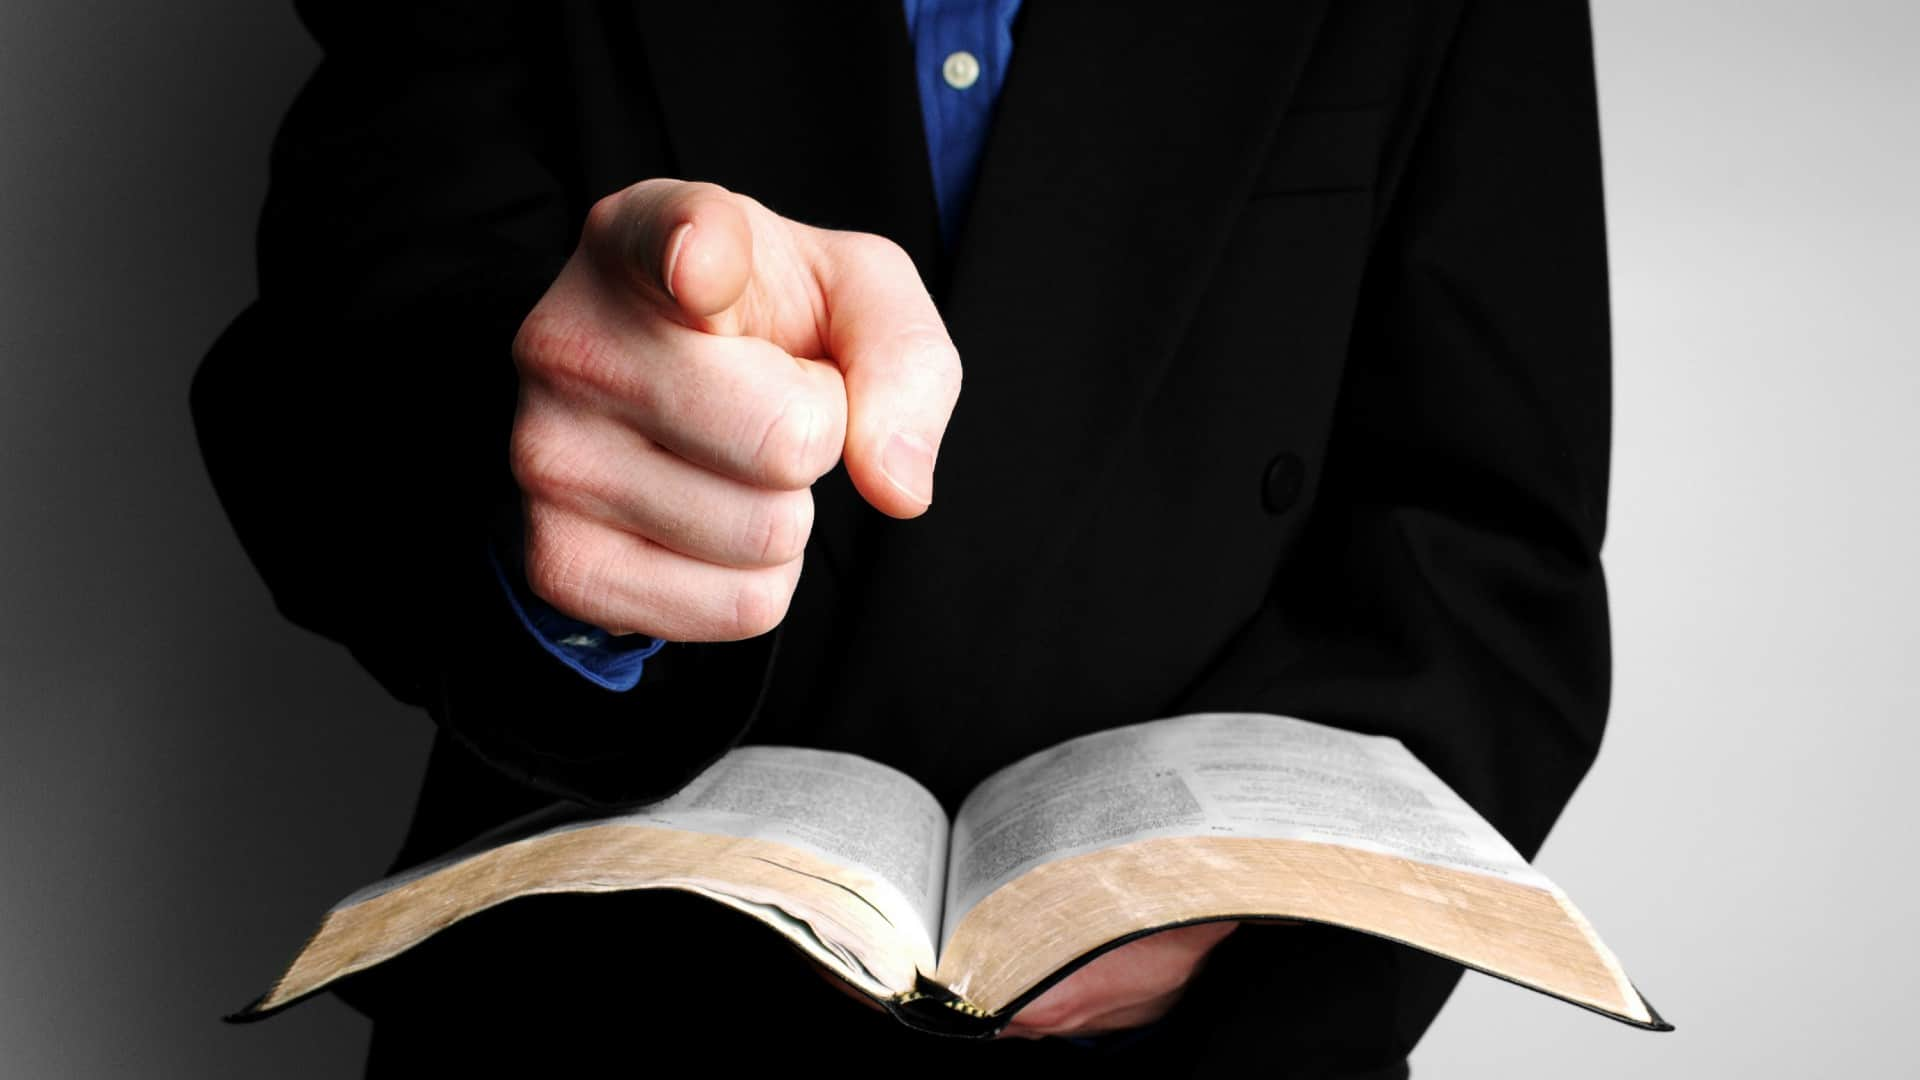 A man holds a law book and points his finger, indicating an accusation or alleged offence to be settled in court